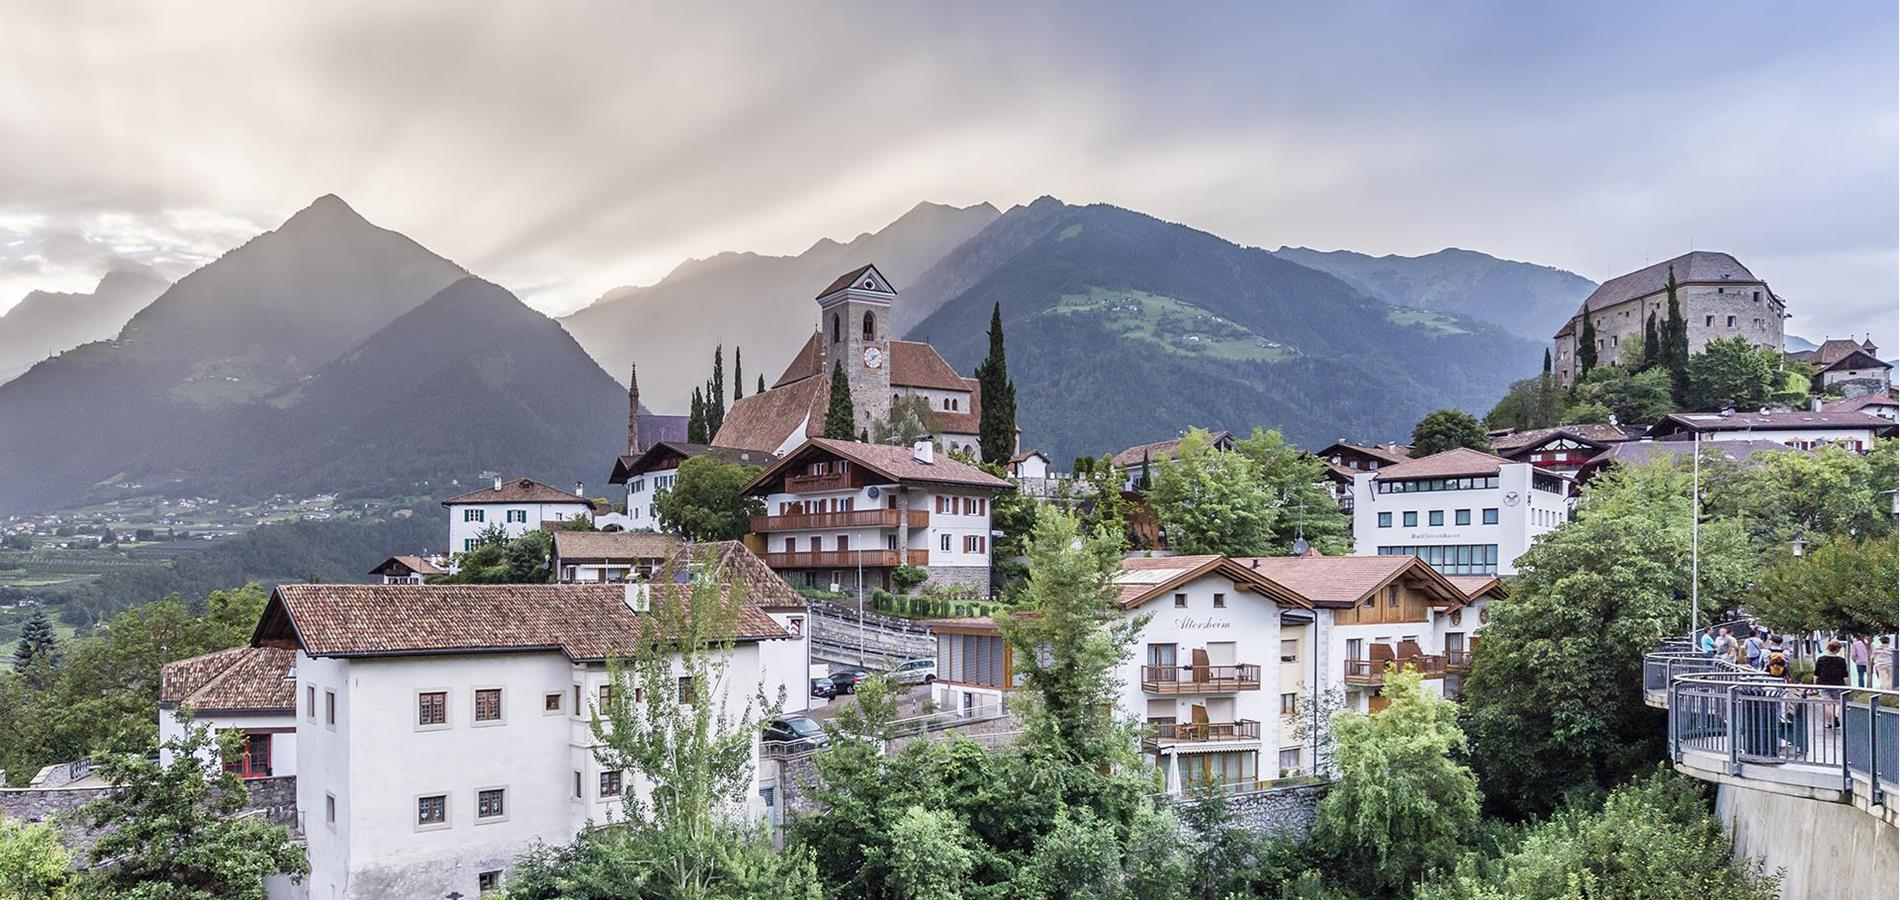 Scena in South Tyrol